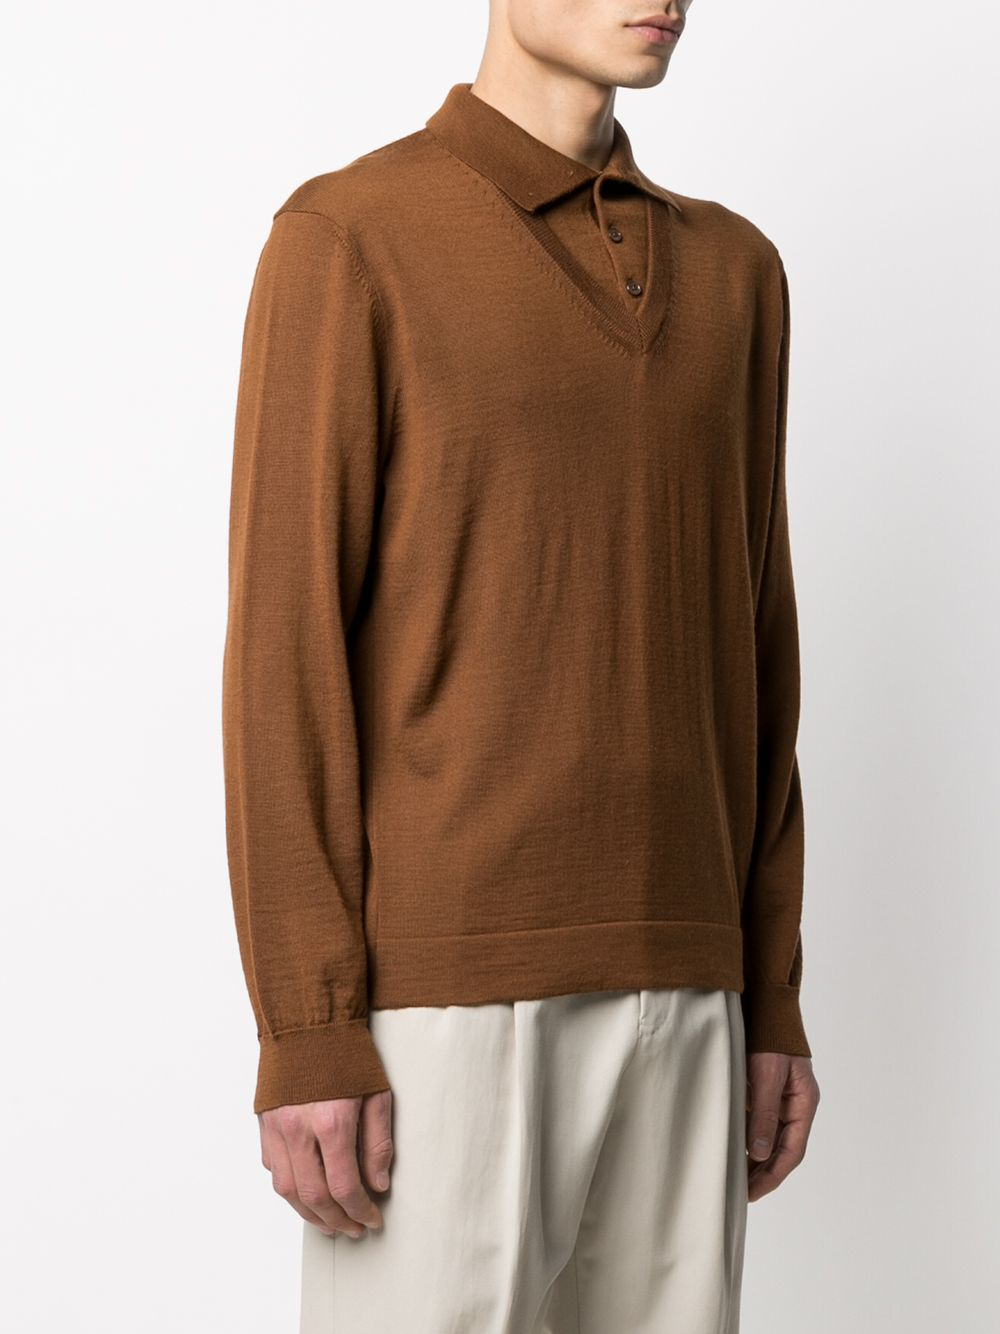 KNITTED V-NECK POLO SHIRT LEMAIRE | Sweaters | 211 KN309 LK087467